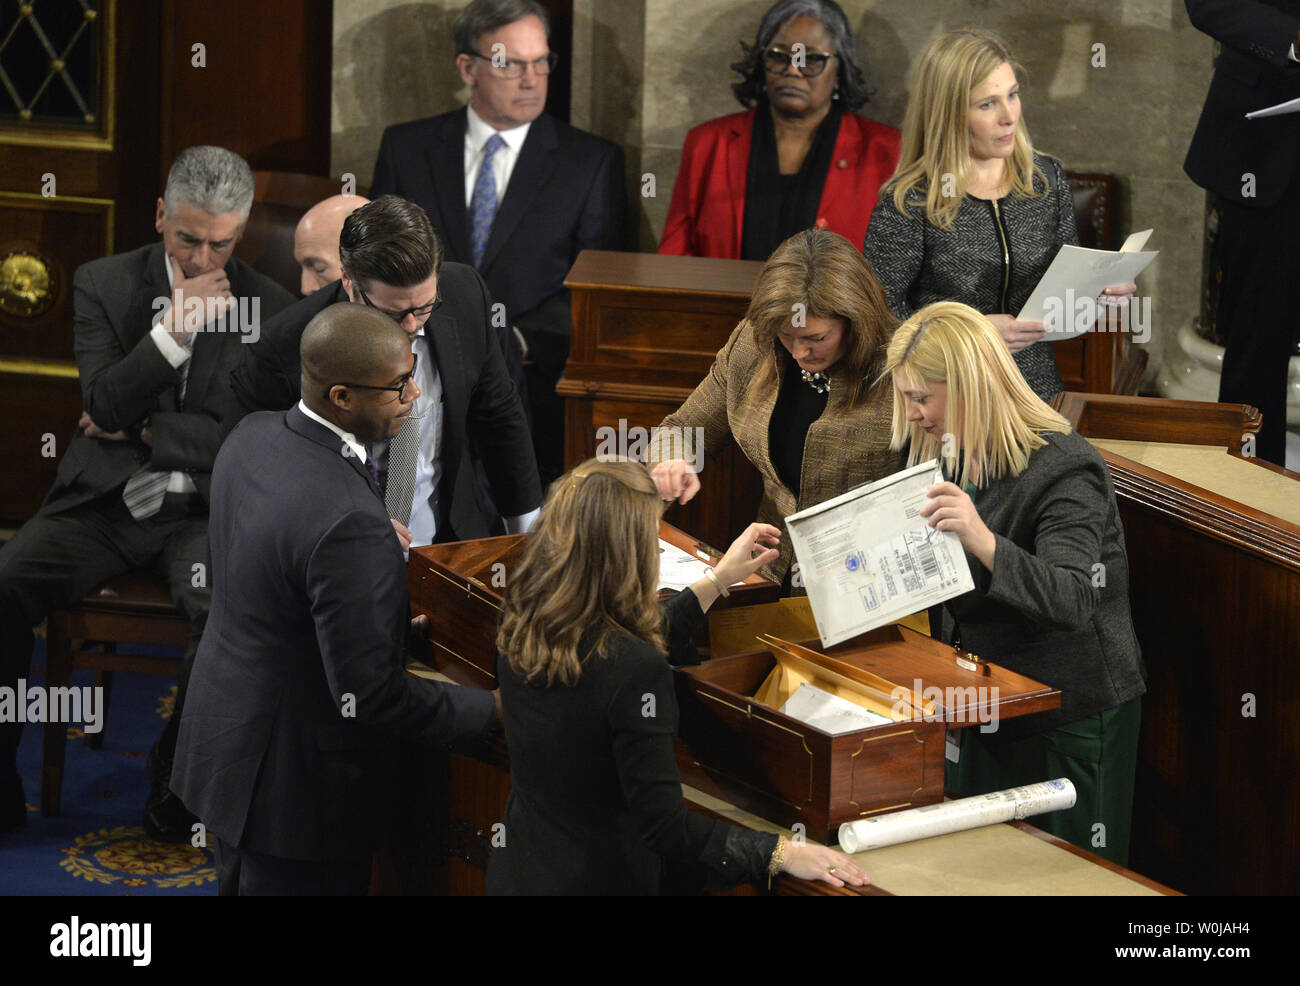 Congressional staff unseal envelopes from the two ballot boxes that contain 50 states and District of Columbia Electoral College votes on the floor of the House to be counted and validated at the U.S. Capitol, January 6, 2017, in Washington, DC. The procedure, established by the Constitution, and presided over by Vice President Joe Biden and Speaker Paul Ryan declared and finalized Donald J. Trump and Mike Pence as president and vice president.                 Photo by Mike Theiler/UPI - Stock Image